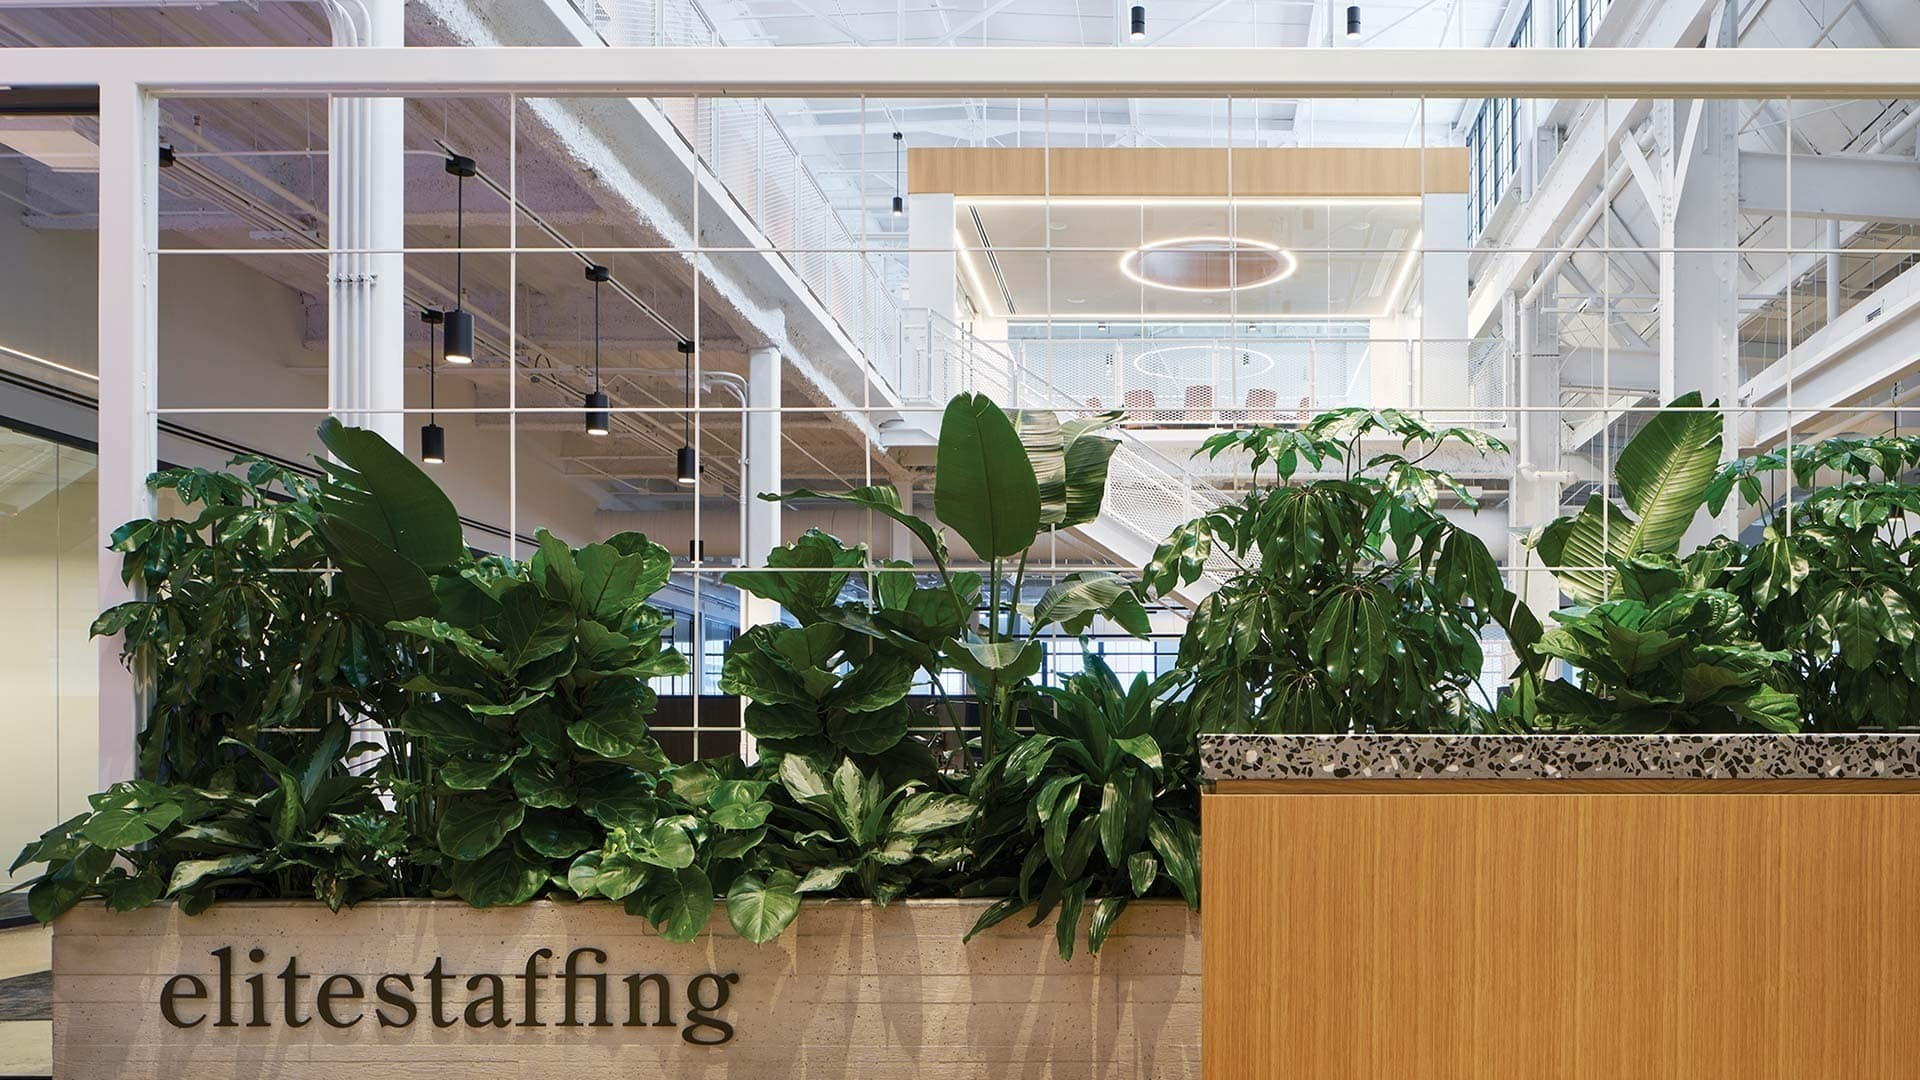 Elite Staffing Inc. is a temporary employment services and stagging agency located in Chicago, IL featuring lighting products by Acuity Brands - Gotham® Lighting andLuminis®. Project in collaboration with Charlie Greene Studio and Acuity Brands agent KSA.  Photographer:Christopher Barrett Photography